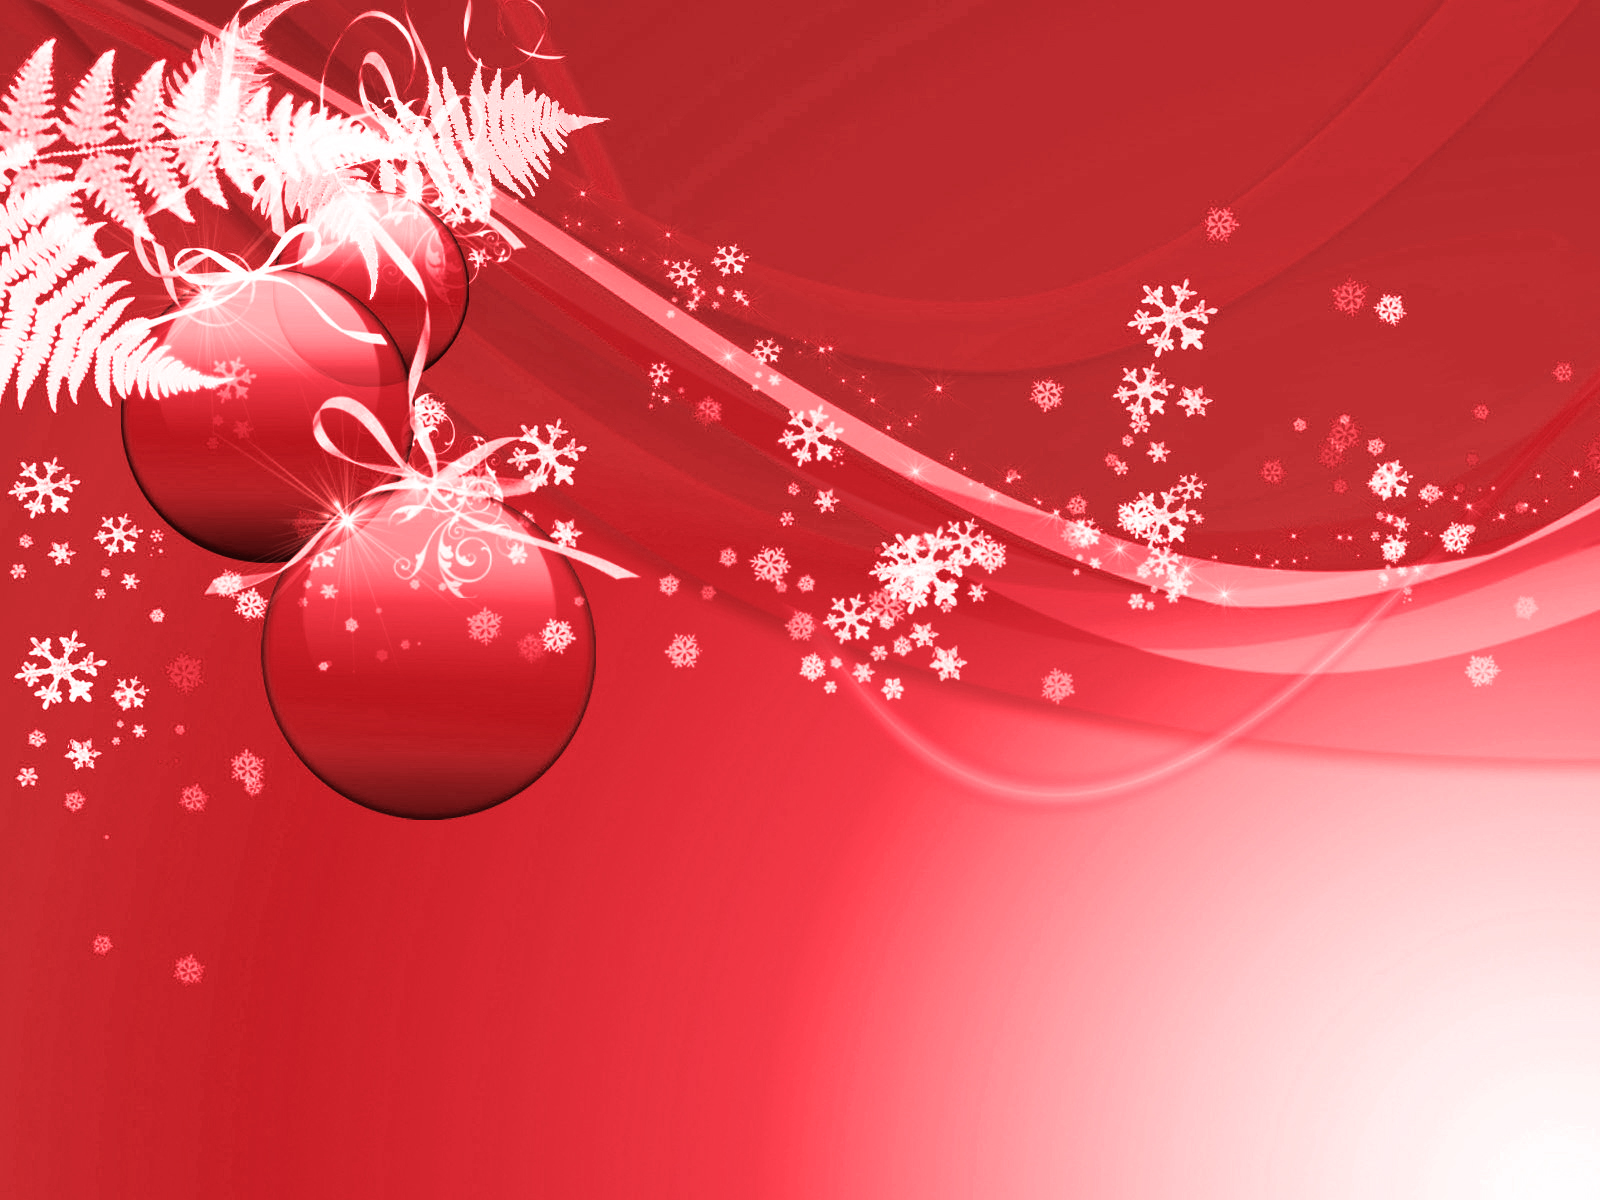 Christmas Template Free Best Christmas Hd Wallpaper 4  Hd Wallpaper  Pinterest  Hd Wallpaper .